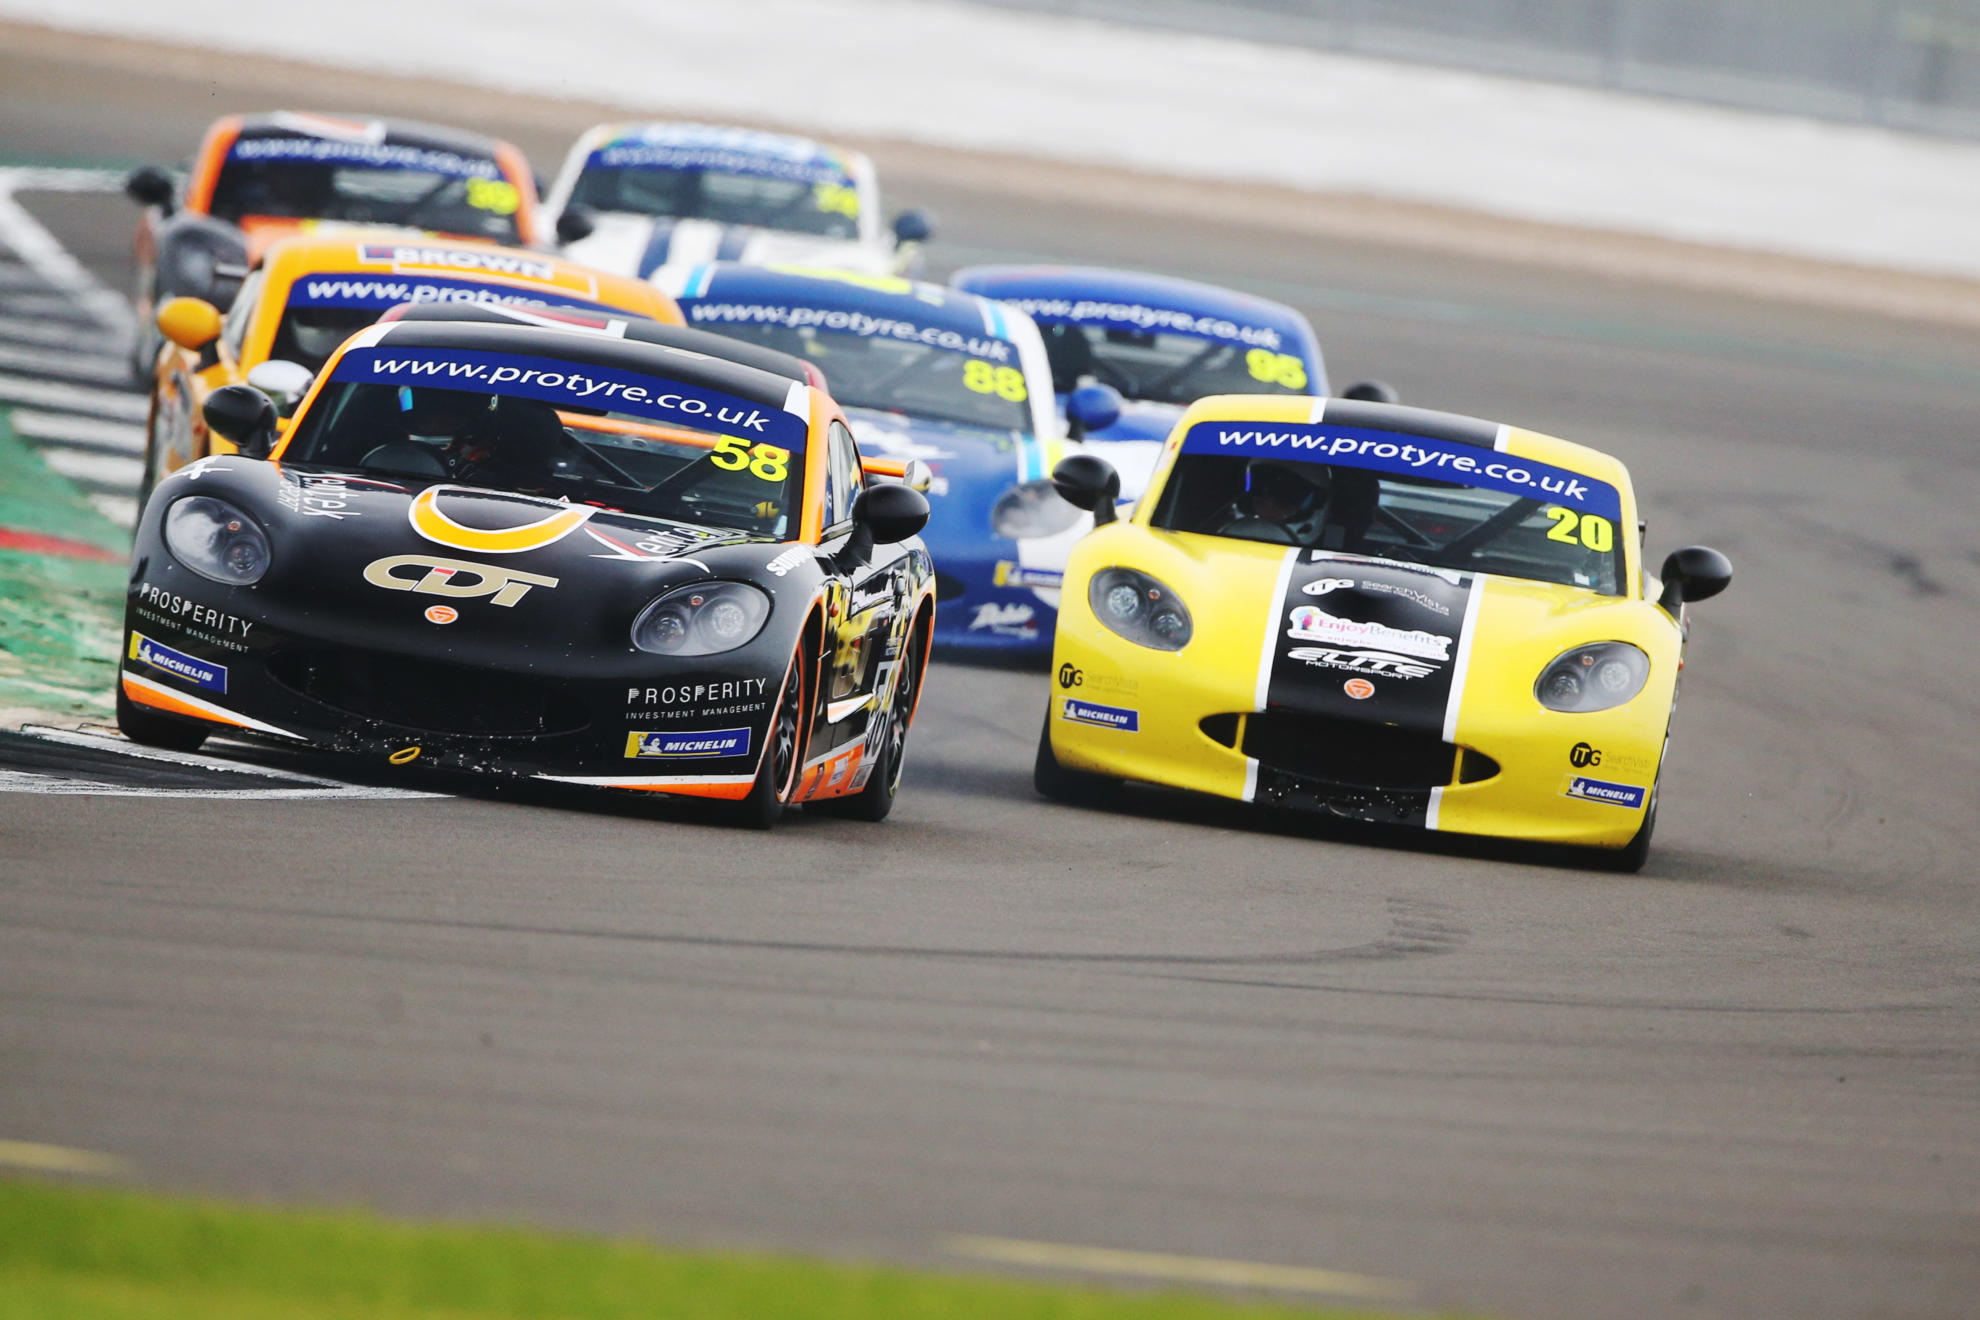 Preview: 2021 Ginetta GT5 Challenge Pro – Donington Park